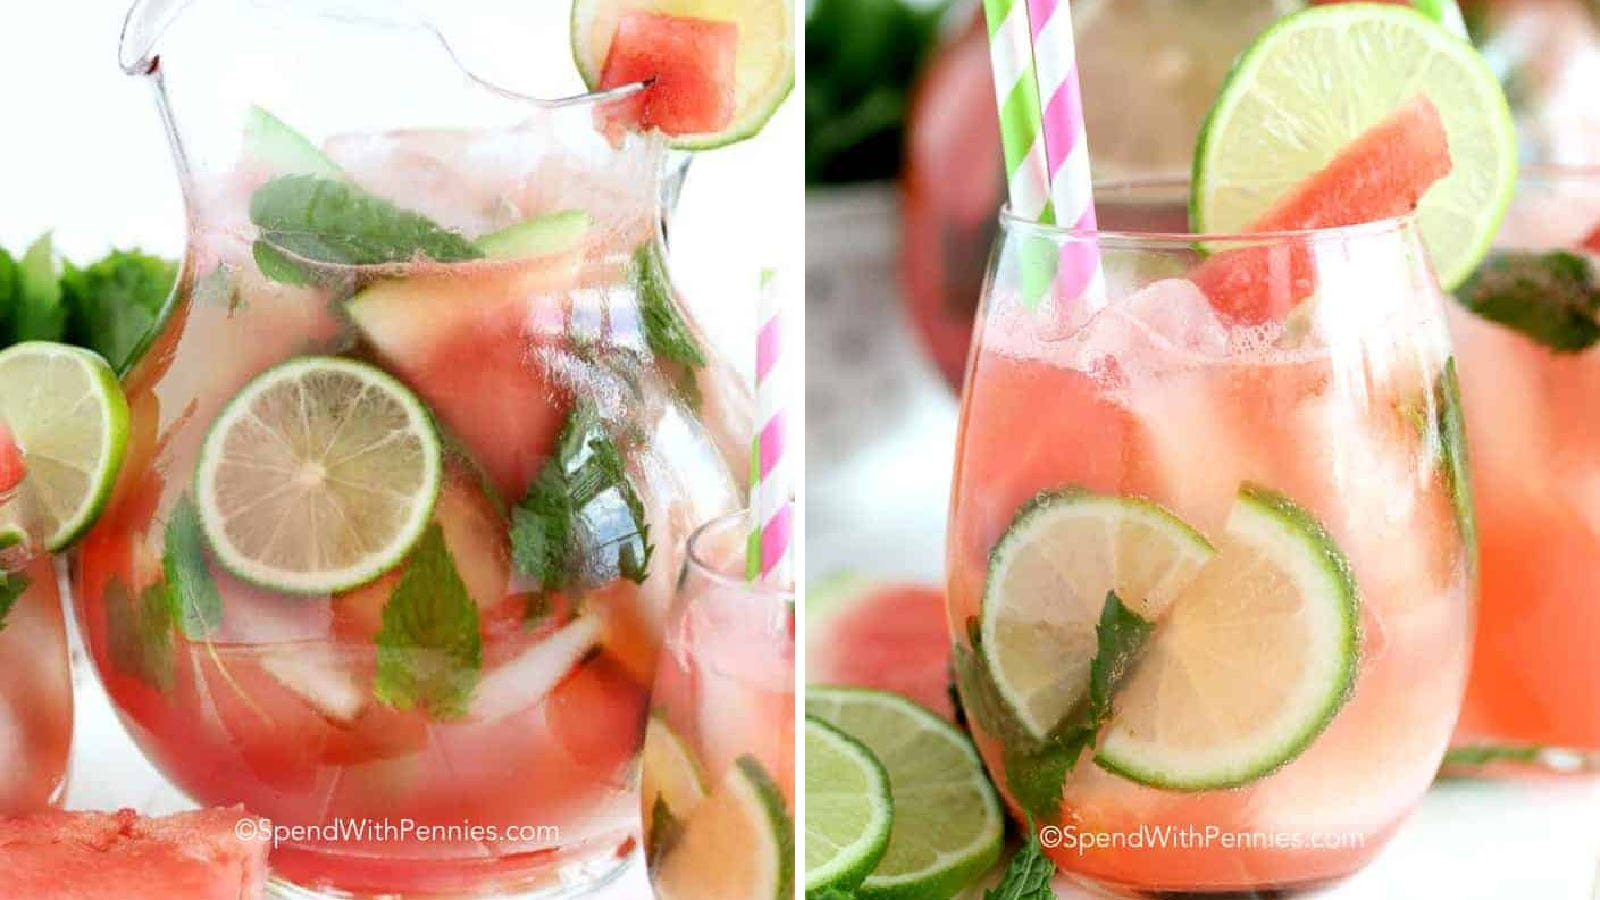 Two images of watermelon mojitos. The left image is of a watermelon mojito in a large glass pitcher, filled with lime, watermelon and several mint leaves. The right image is a glass of the cocktail ready to be sipped.